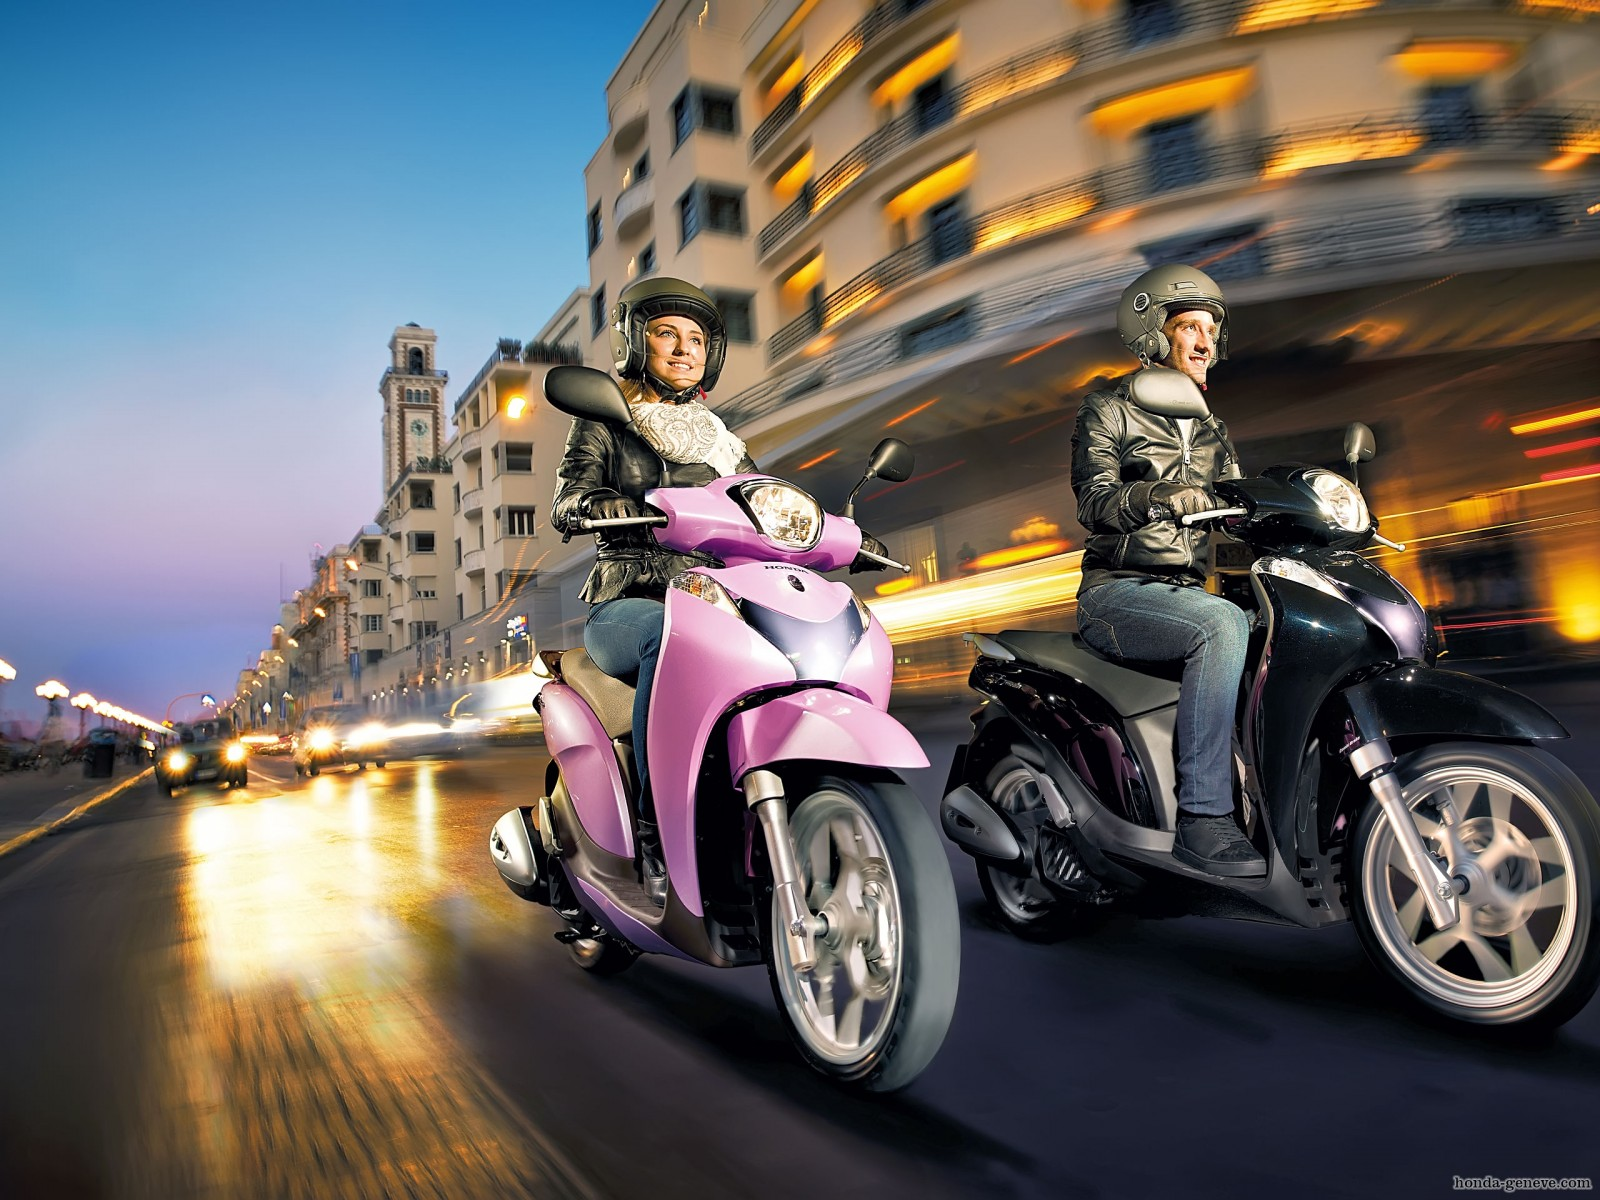 honda sh mode 125 ridingirls. Black Bedroom Furniture Sets. Home Design Ideas